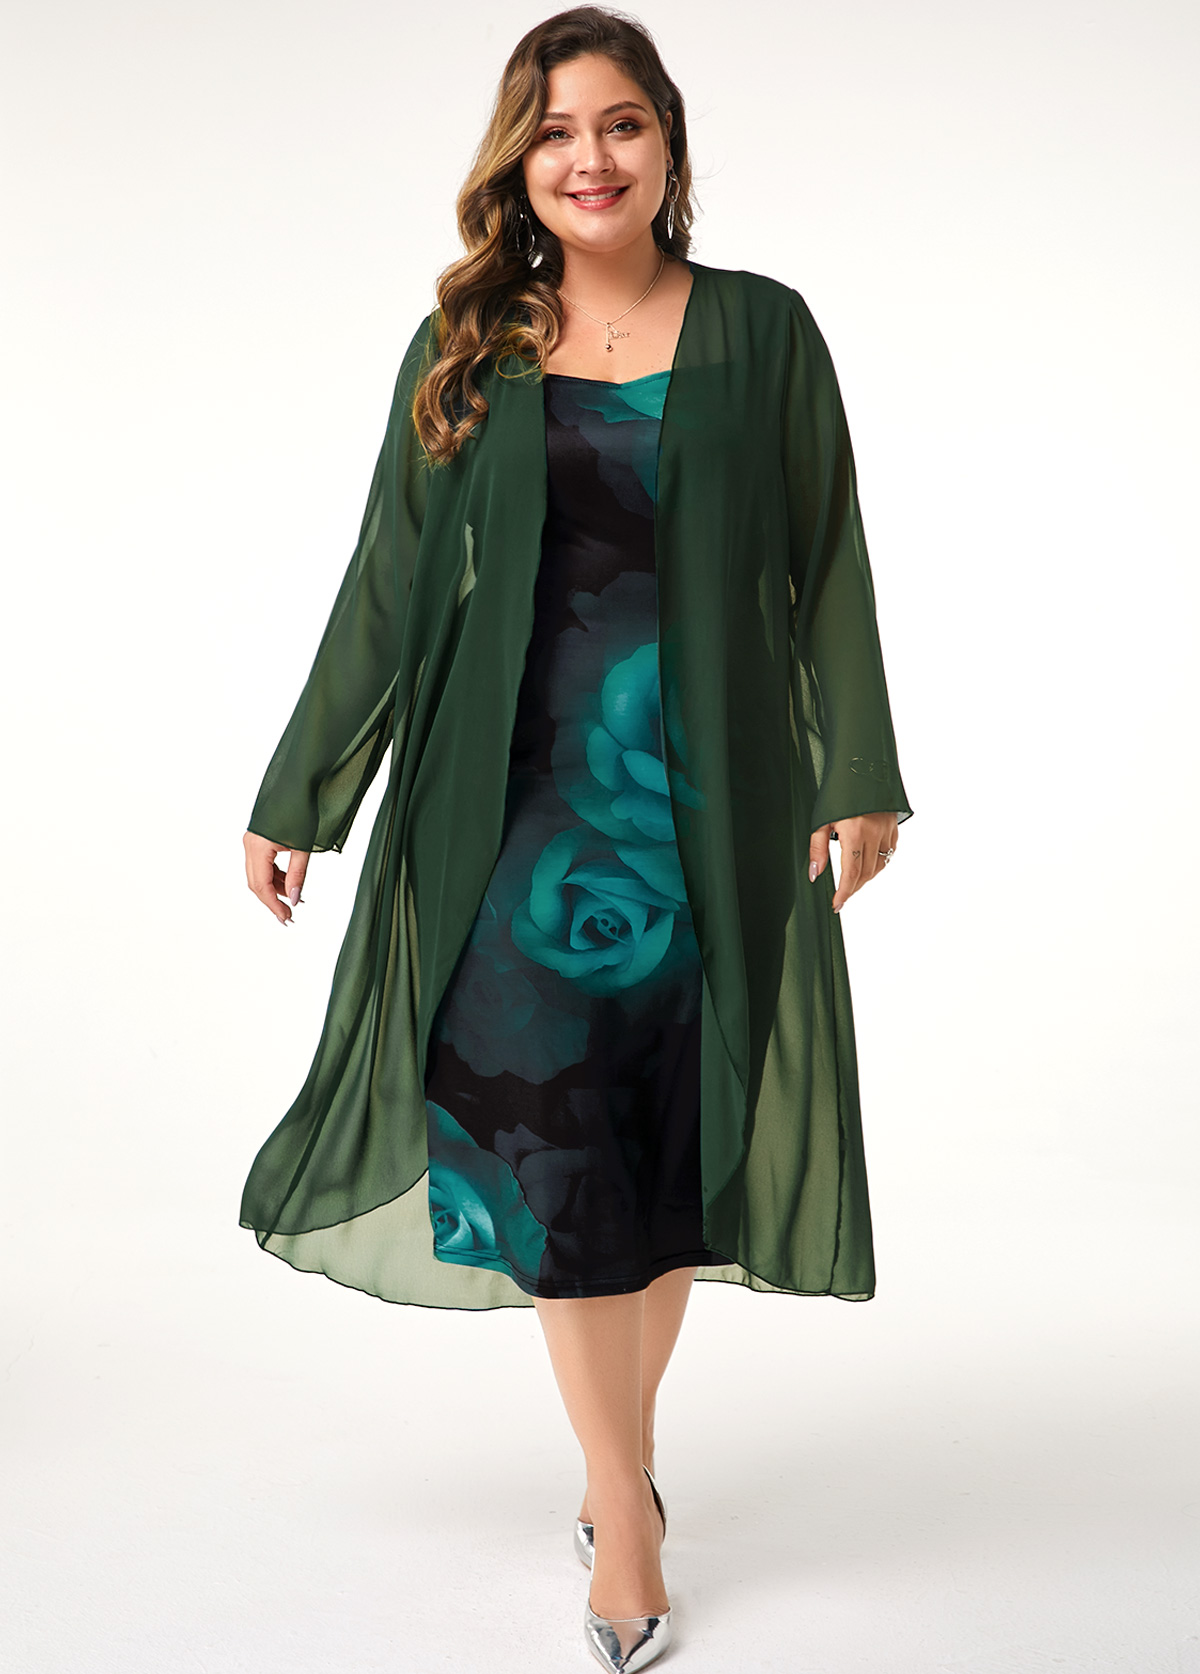 ROTITA Plus Size Chiffon Cardigan and Flower Print Dress